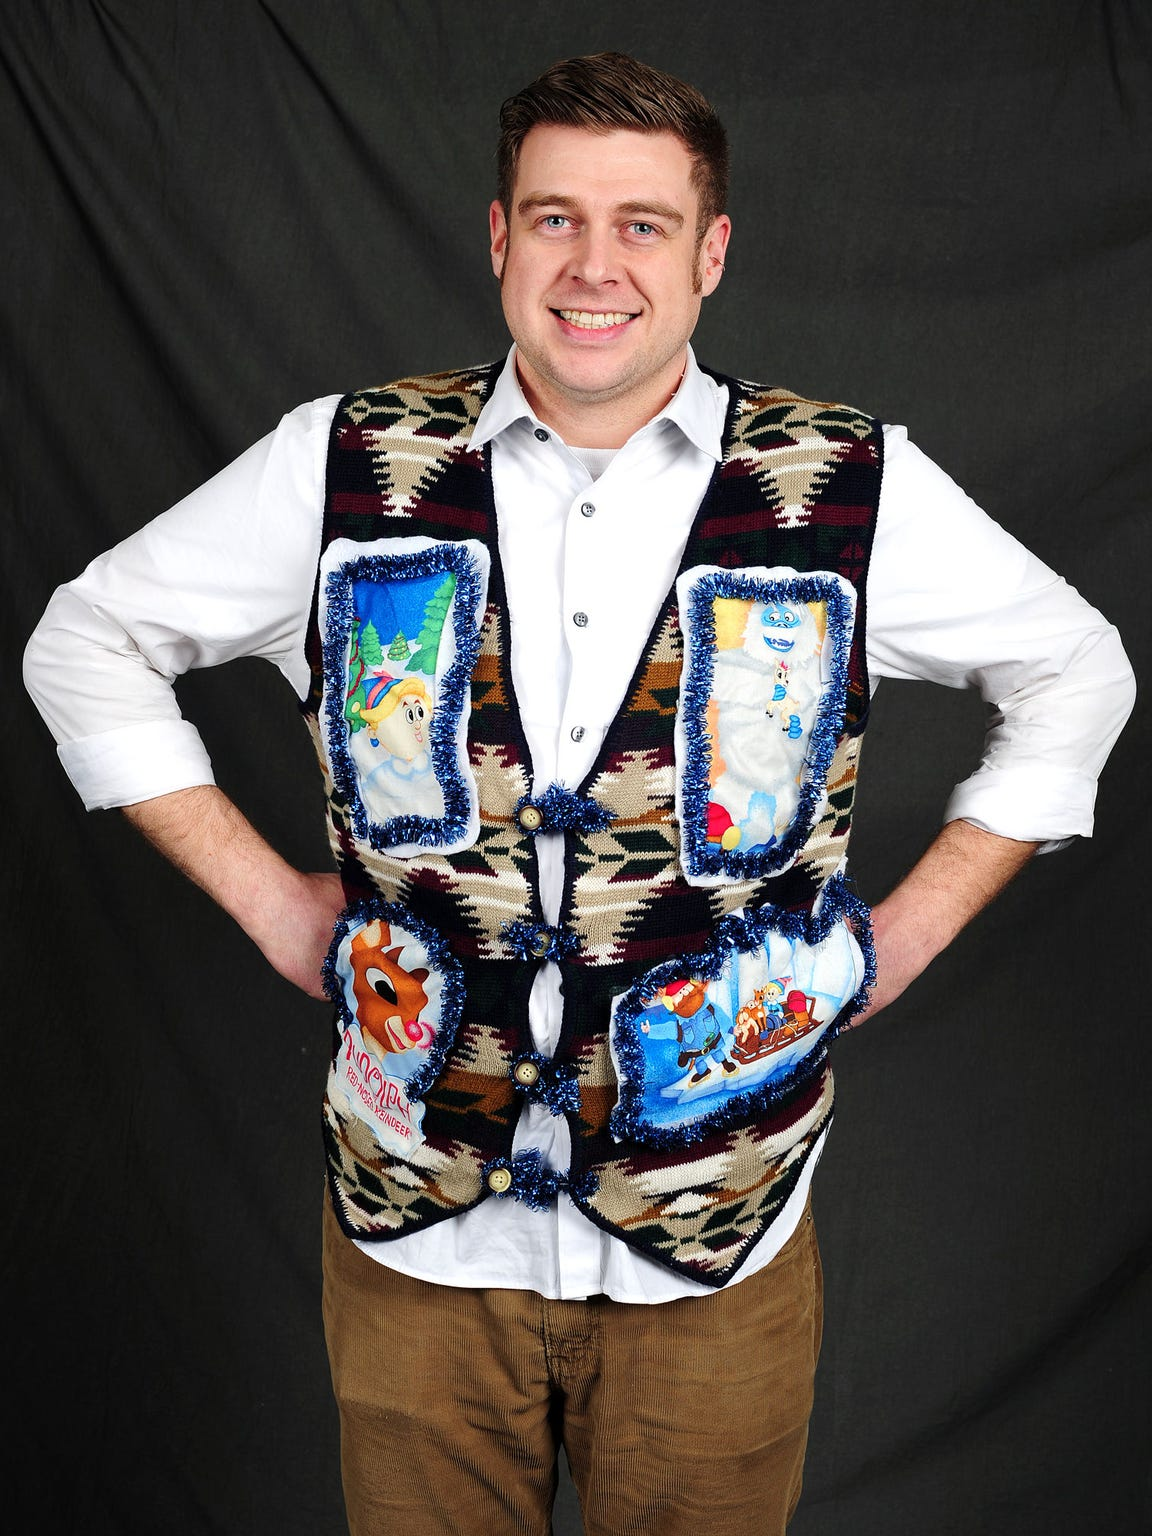 David Ballantyne displays his ugly Christmas sweater,